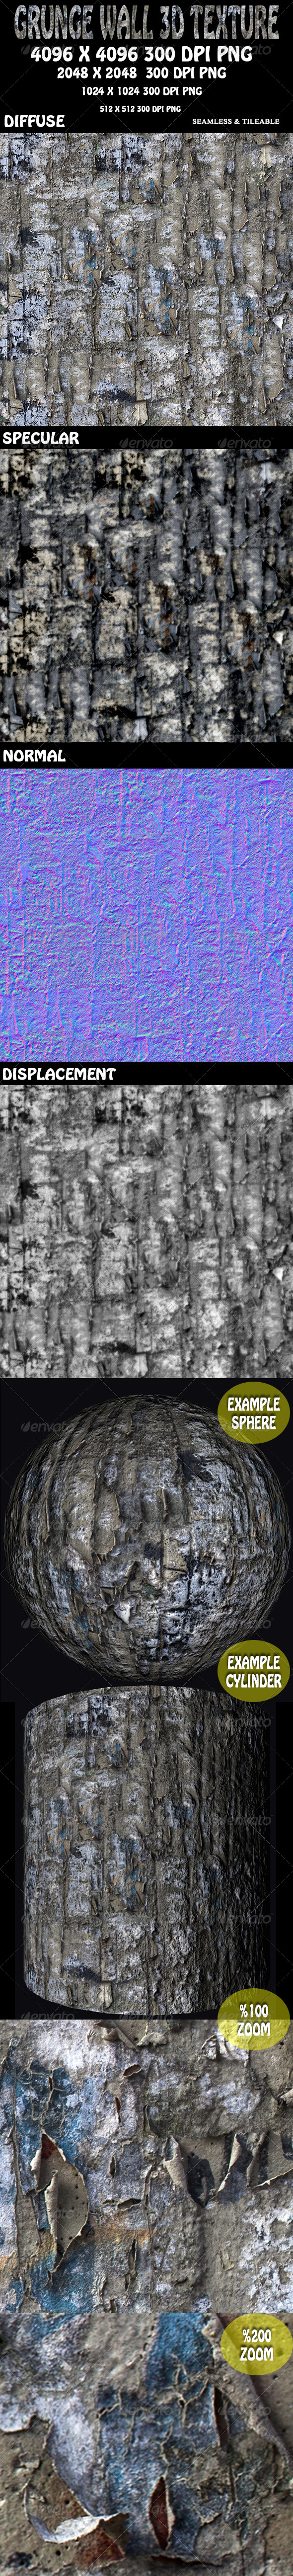 Grunge Wall 3D Texture - 3DOcean Item for Sale